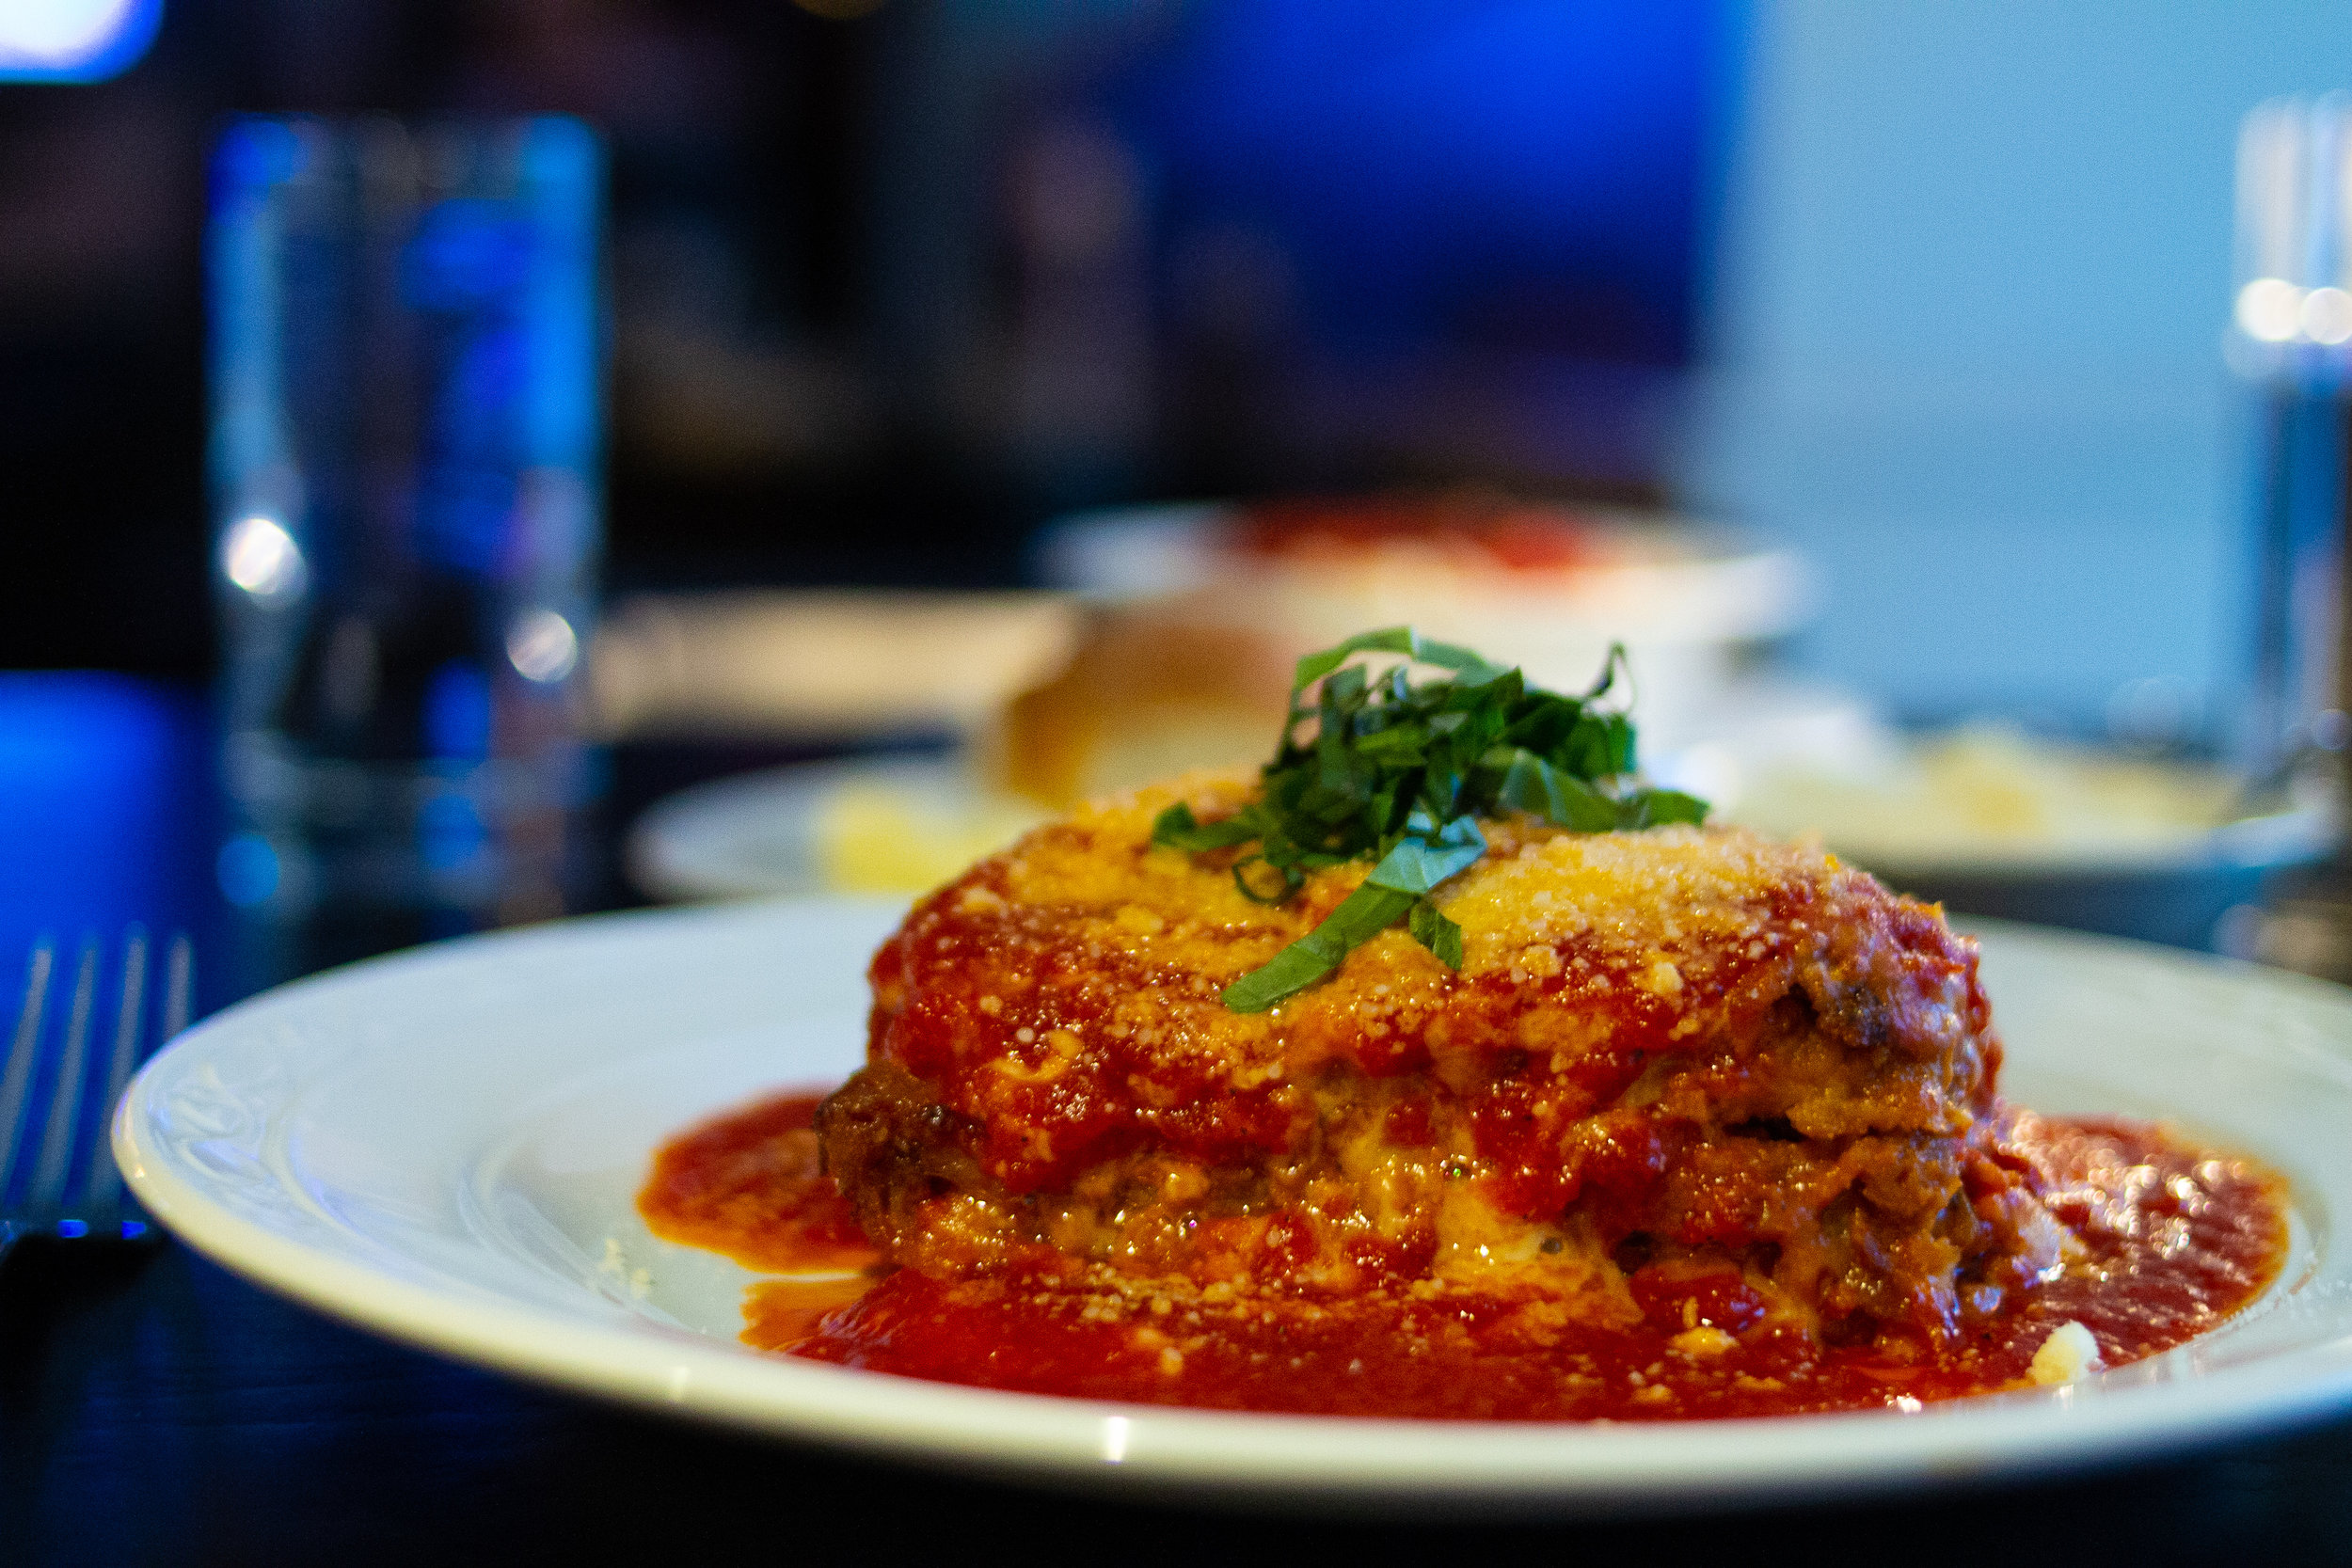 #10 Eggplant Parmesan at Mazzeo's Ristorante - Thin layers of eggplant breaded and layered to make a small tower of sauce cheese that is the epitome of Italian-American comfort food. Eggplant parmesan is of of my favorite meals and Mazzeo's does it well.